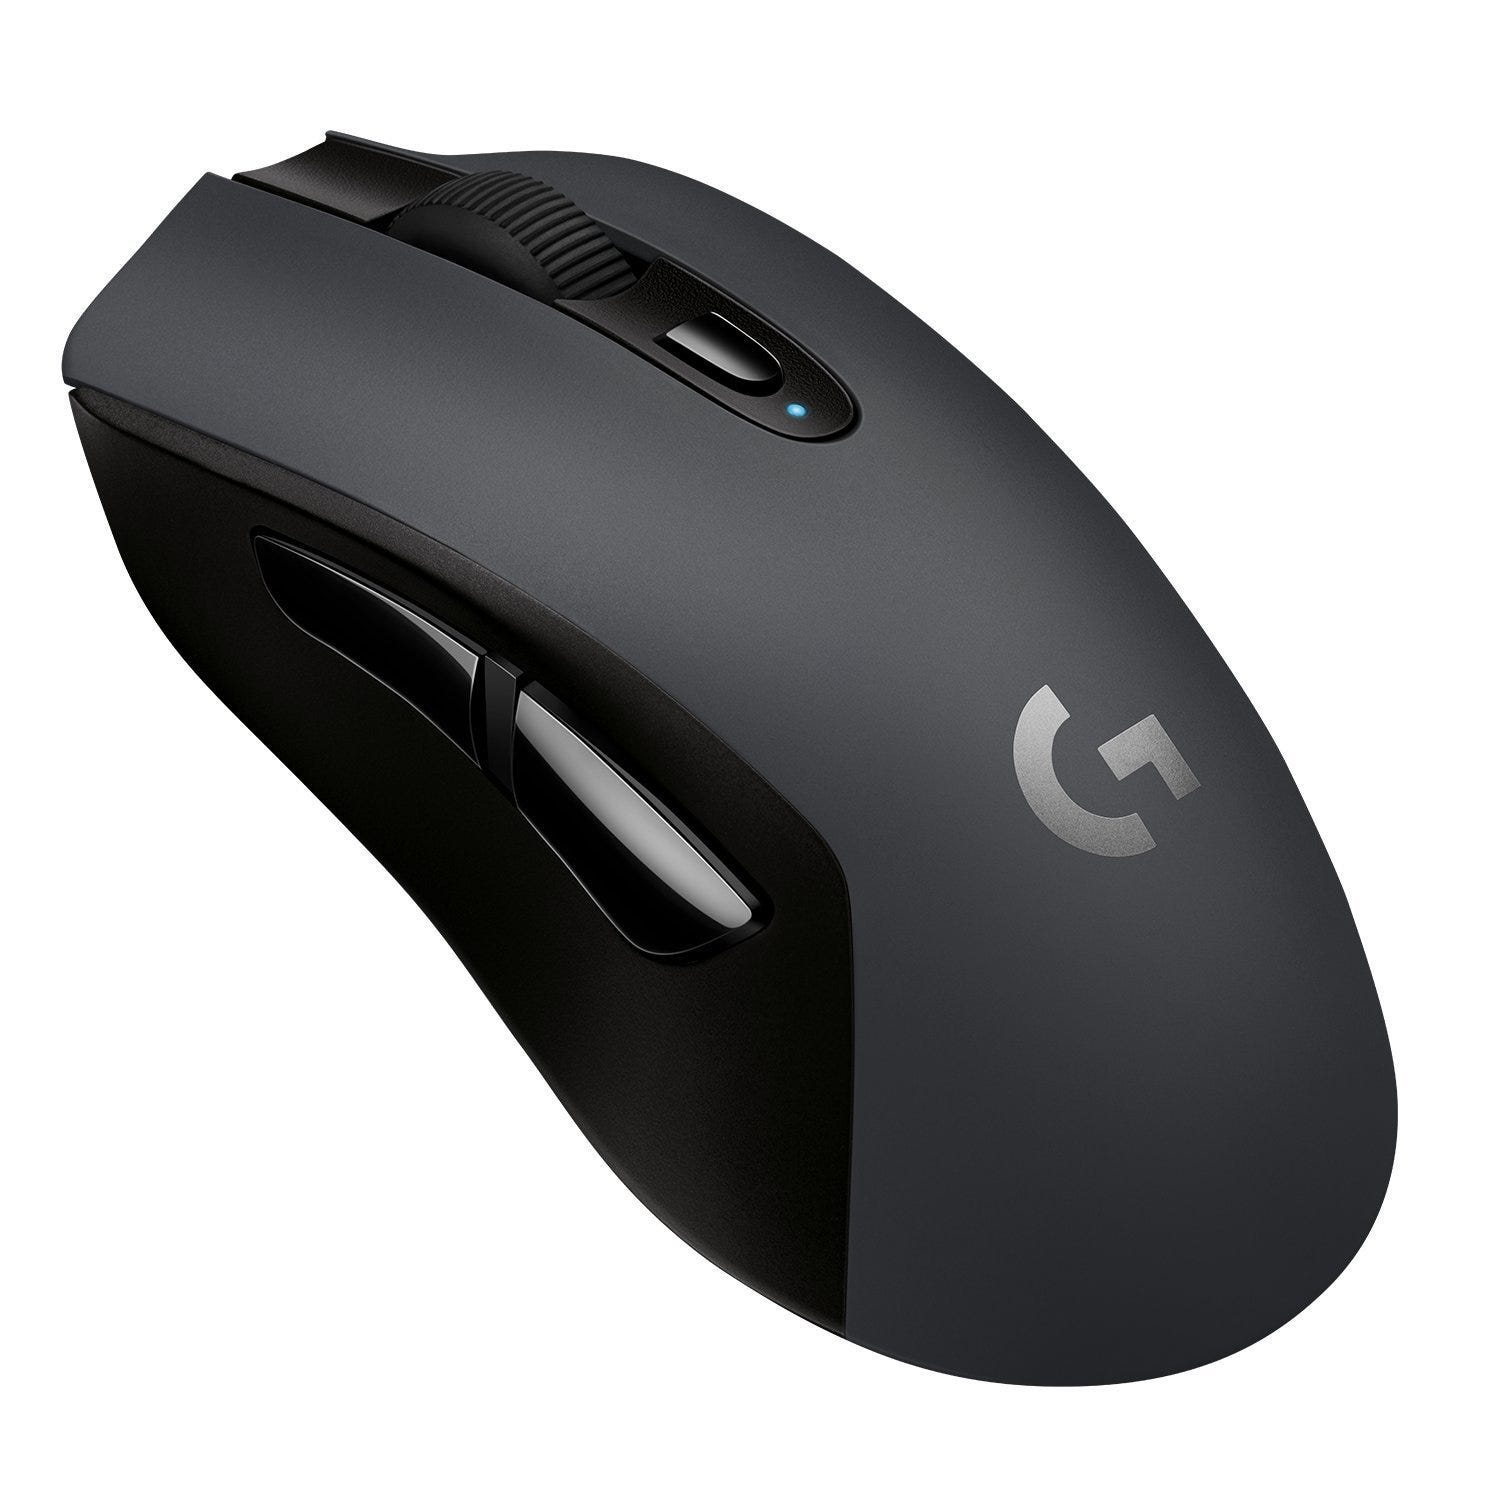 The Logitech G603 is an excellent wireless mouse.